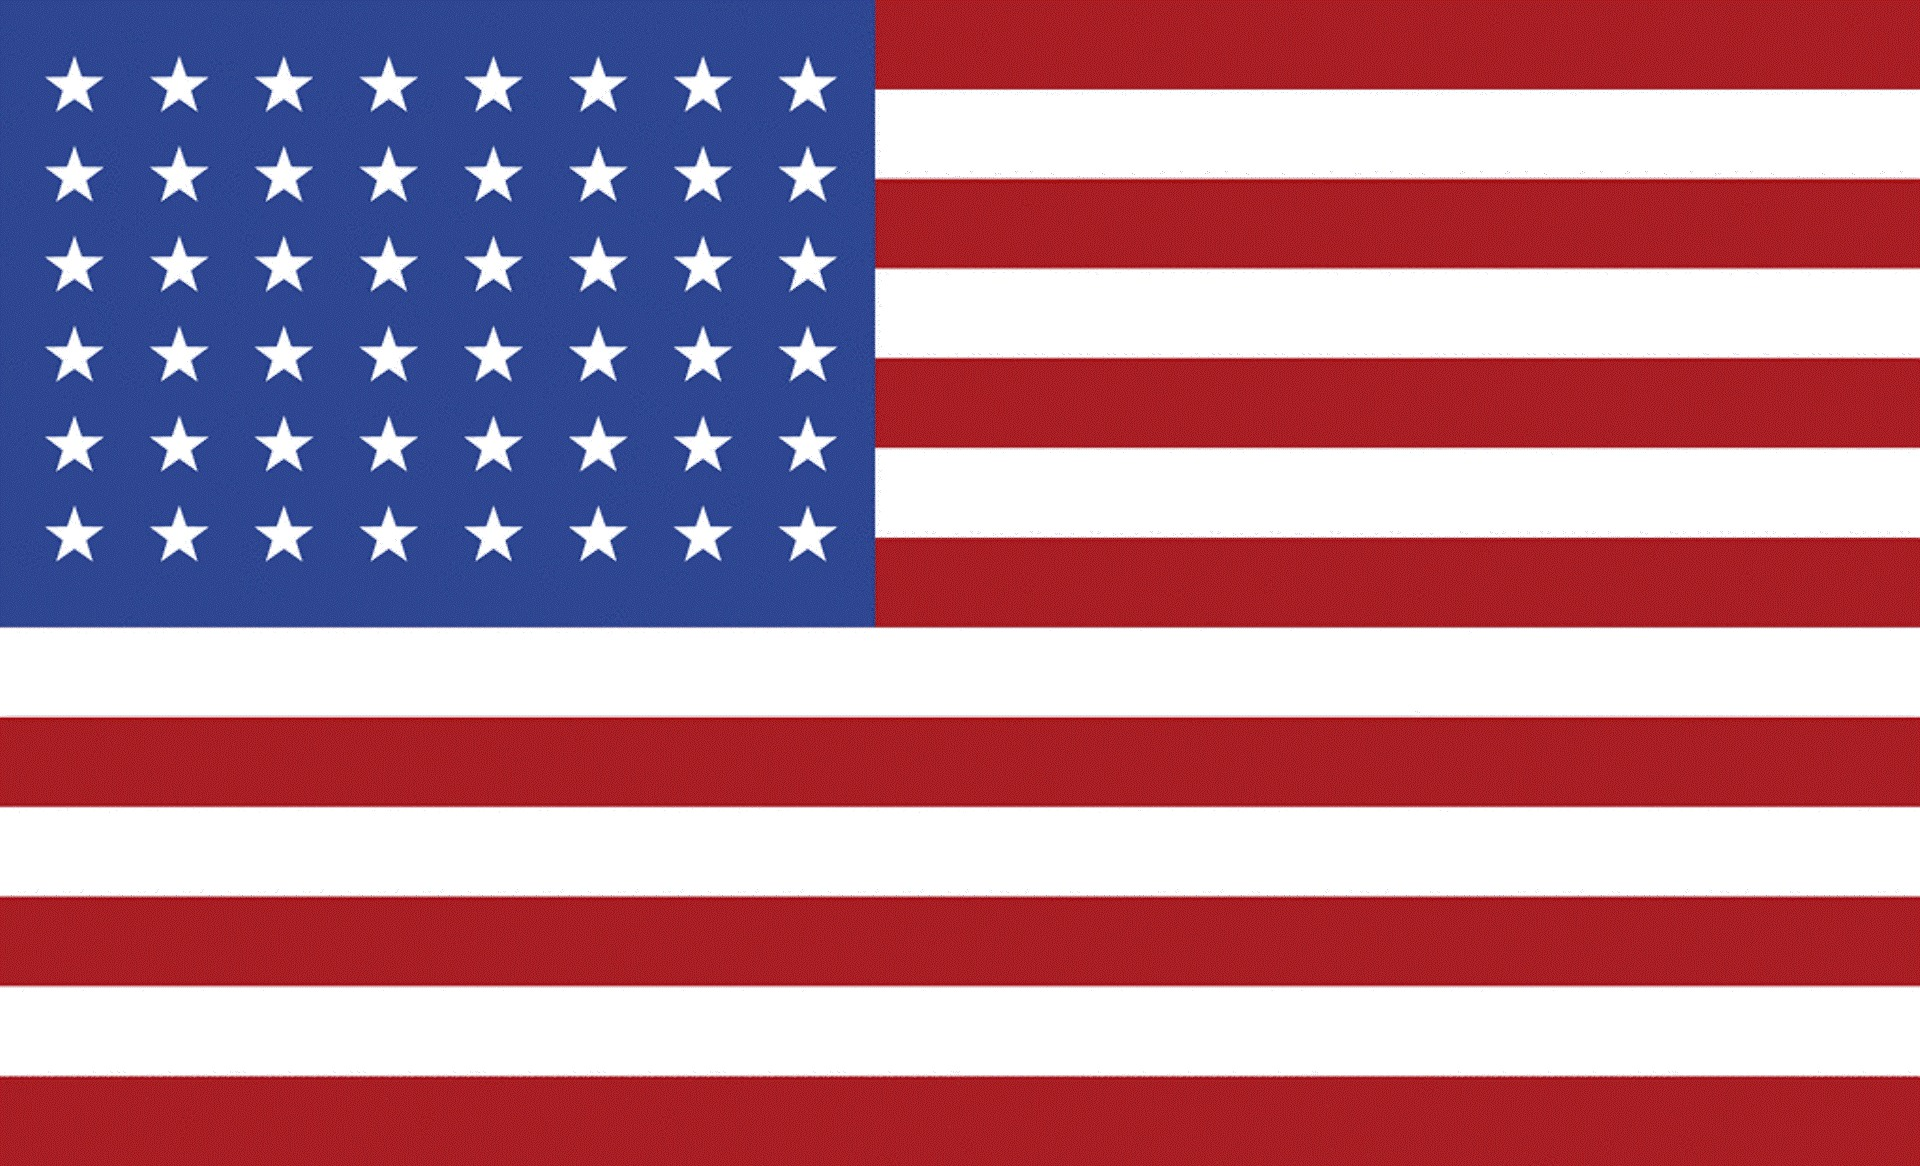 American Flag Background Images 1920x1166